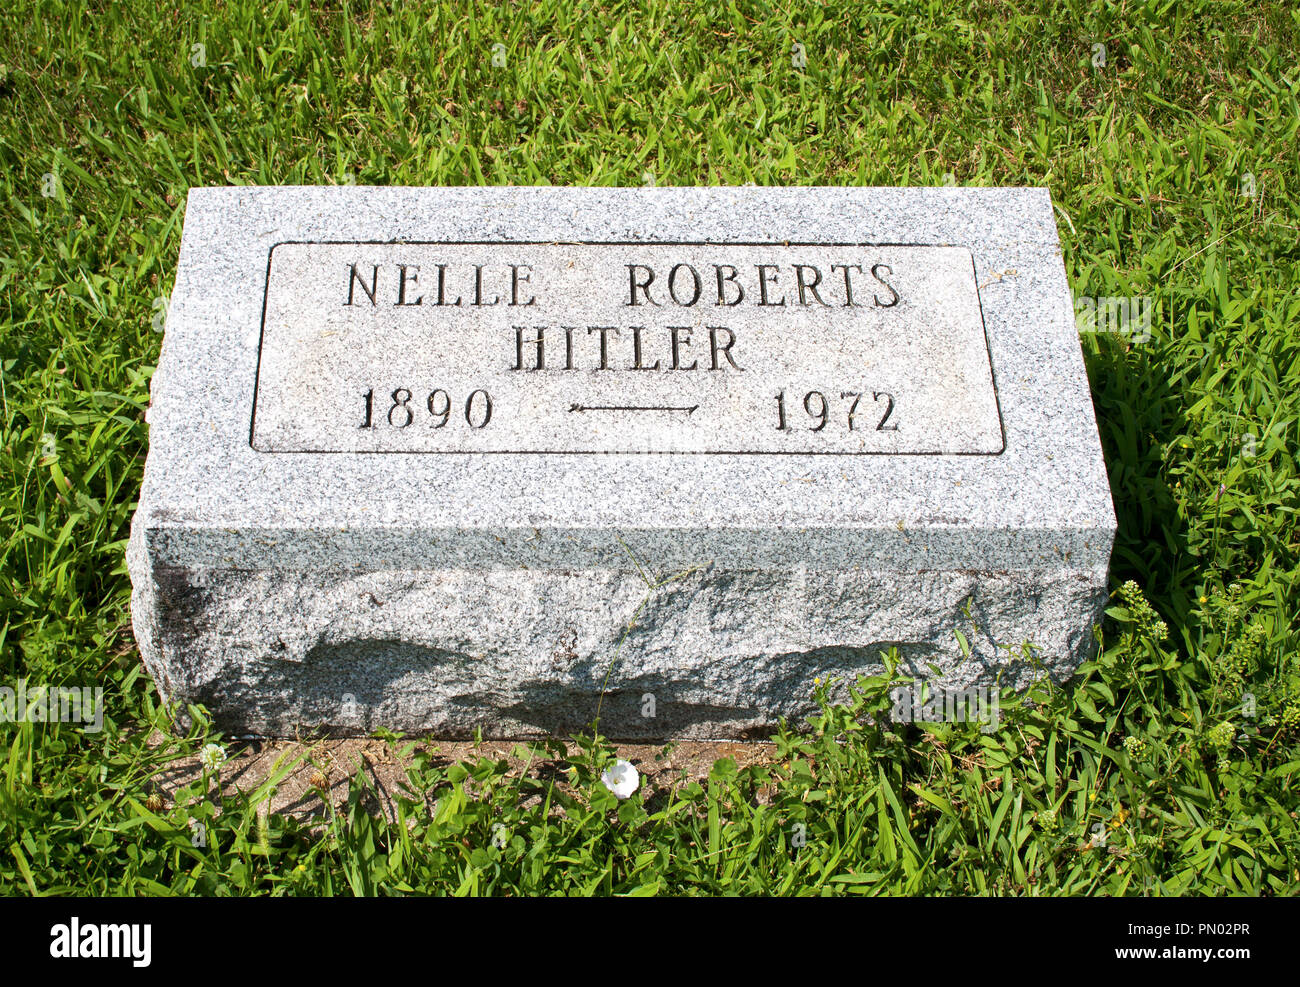 Hitler Ludwig cemetery in Circleville Ohio - Stock Image